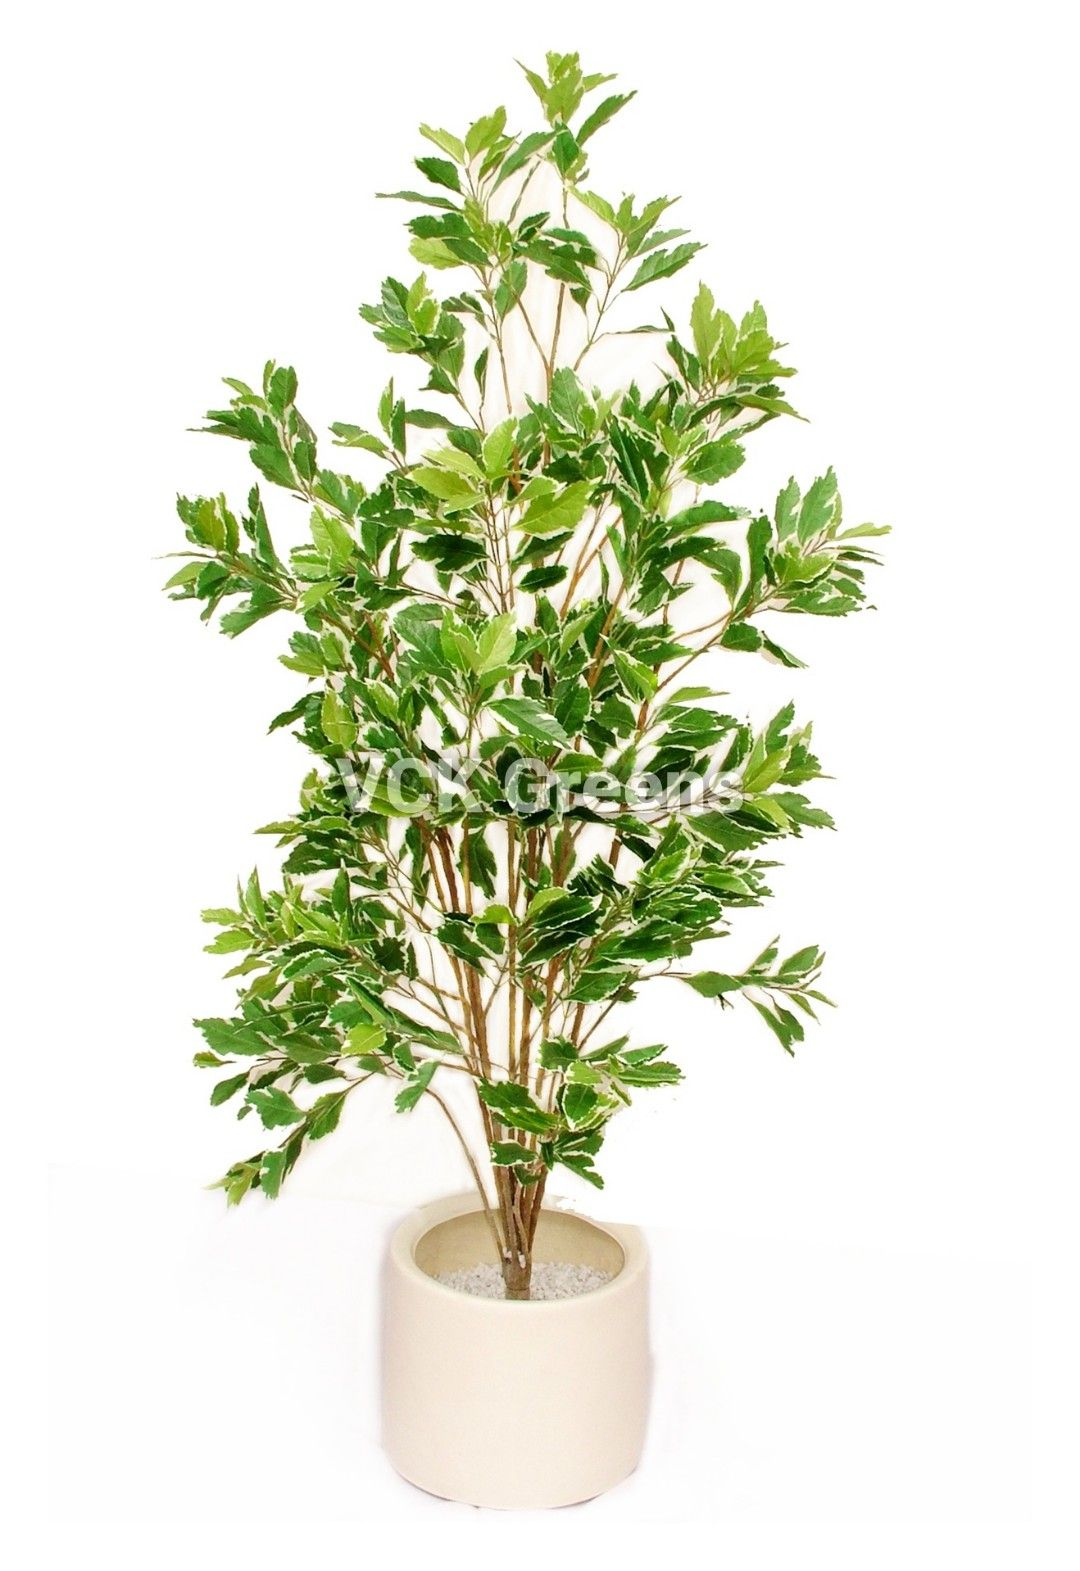 Artificial Hide Green Leaves Plants for home and offices. Product Height - 150cm (5Feet), Product comes without pot. Product Code - #VCKAP2025. #artificialplants #fakeplants